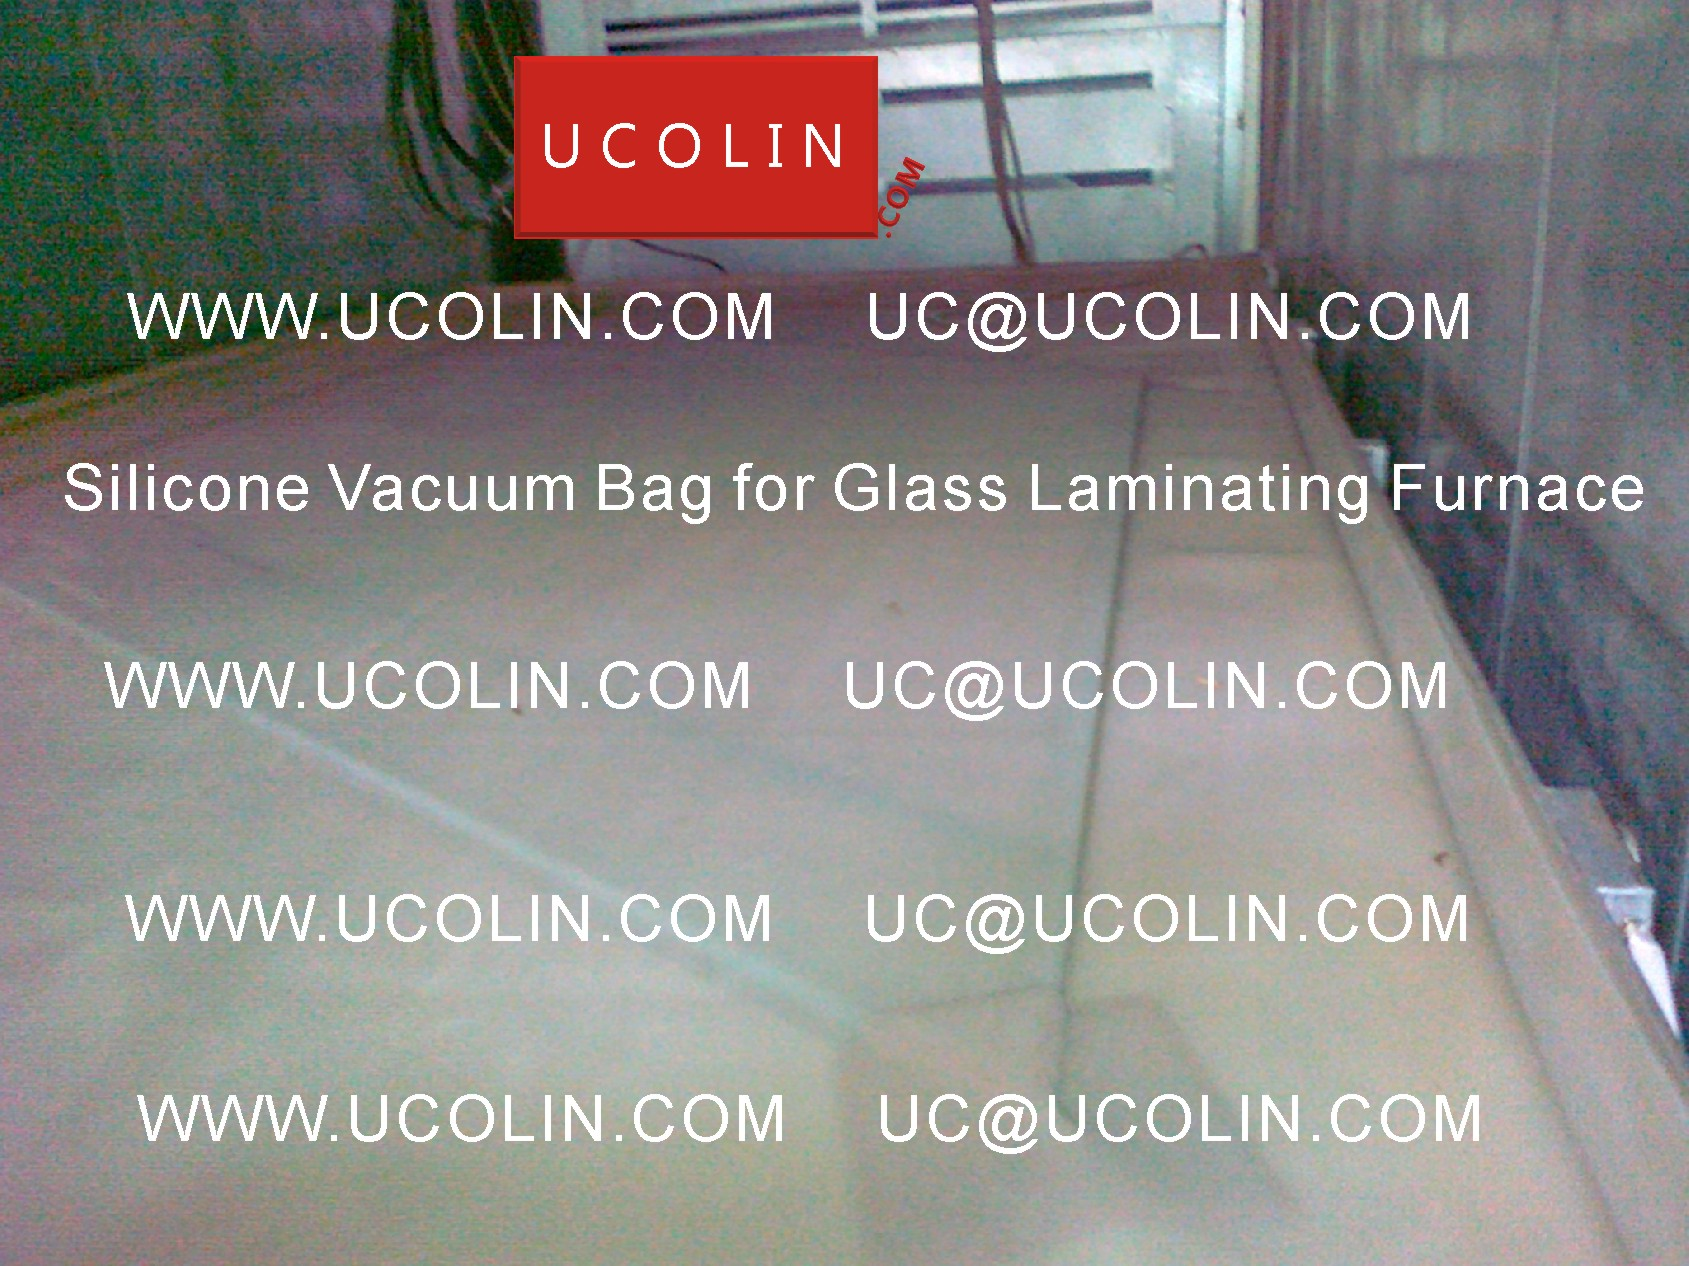 04 Application of Silicone Vacuum Bag for Glass Laminating Furnace